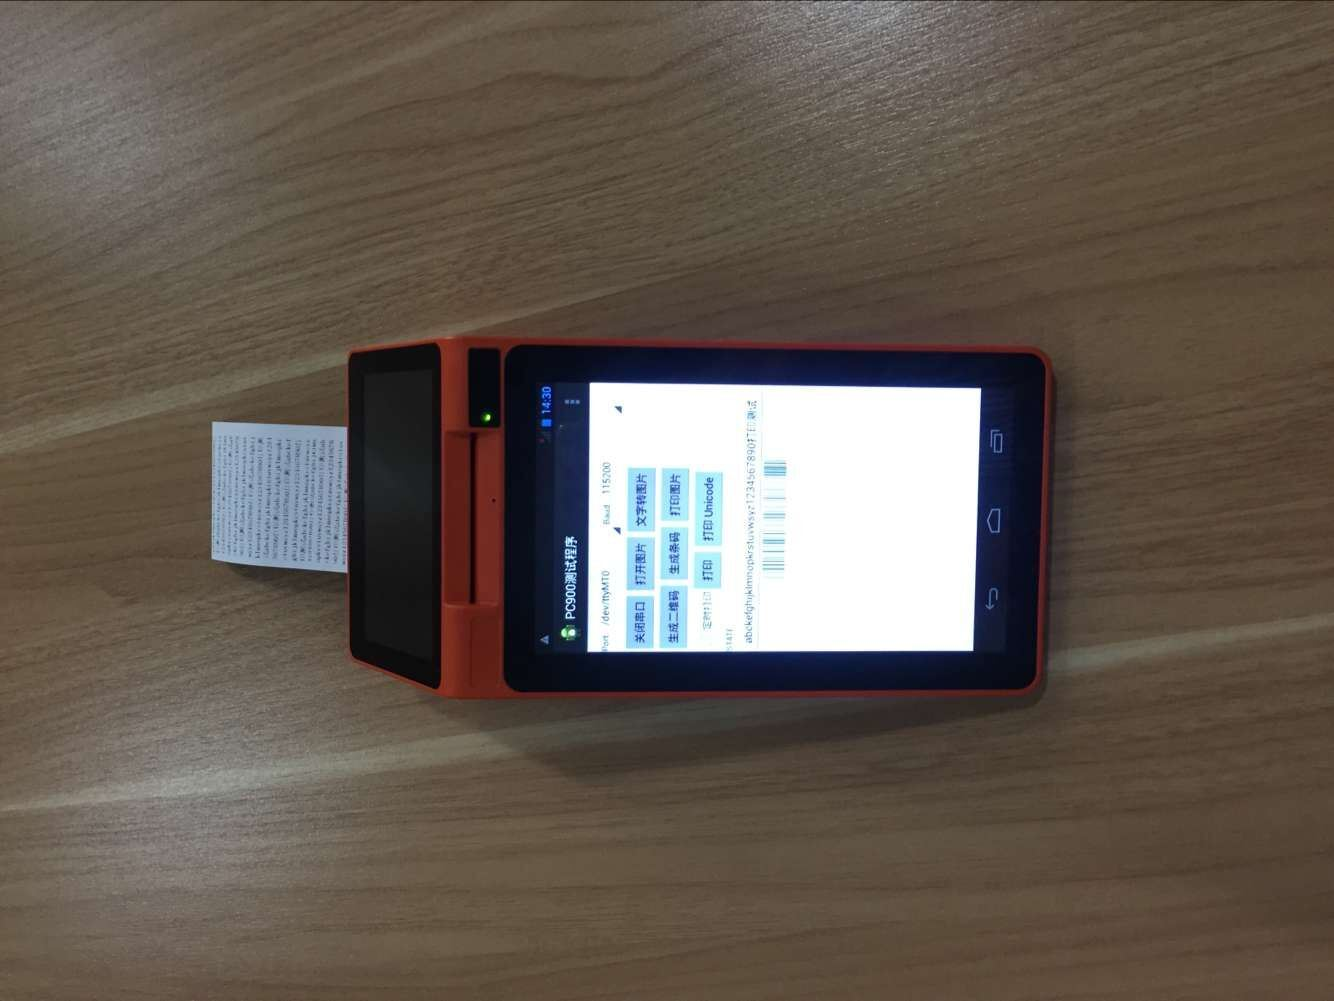 Dual Screen Android Based POS NFC Payment Terminal with Printer